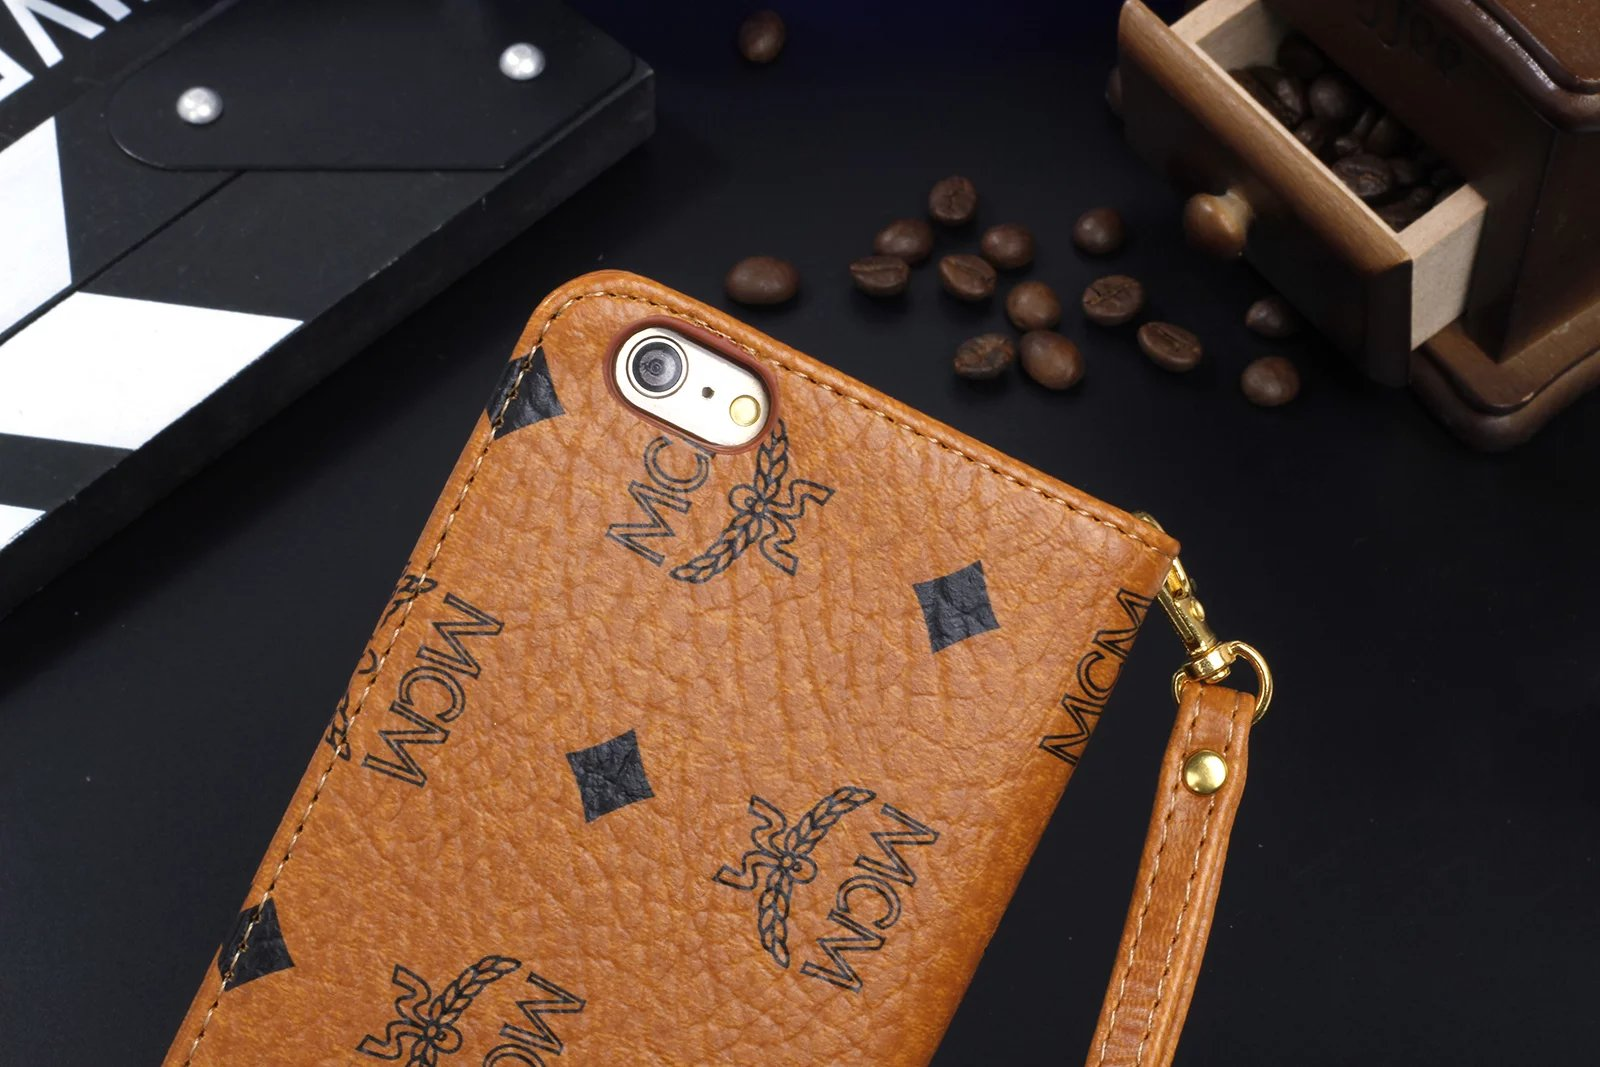 where to buy iphone 8 Plus cases custom phone cases iphone 8 Plus MCM iphone 8 Plus case iPhone 8 Plus cover iphone covers uk mophie juice pack iPhone 8 Plus iphone 8 Plus cases and covers designer where to buy iphone cases cheap phone cases iPhone 8 Plus